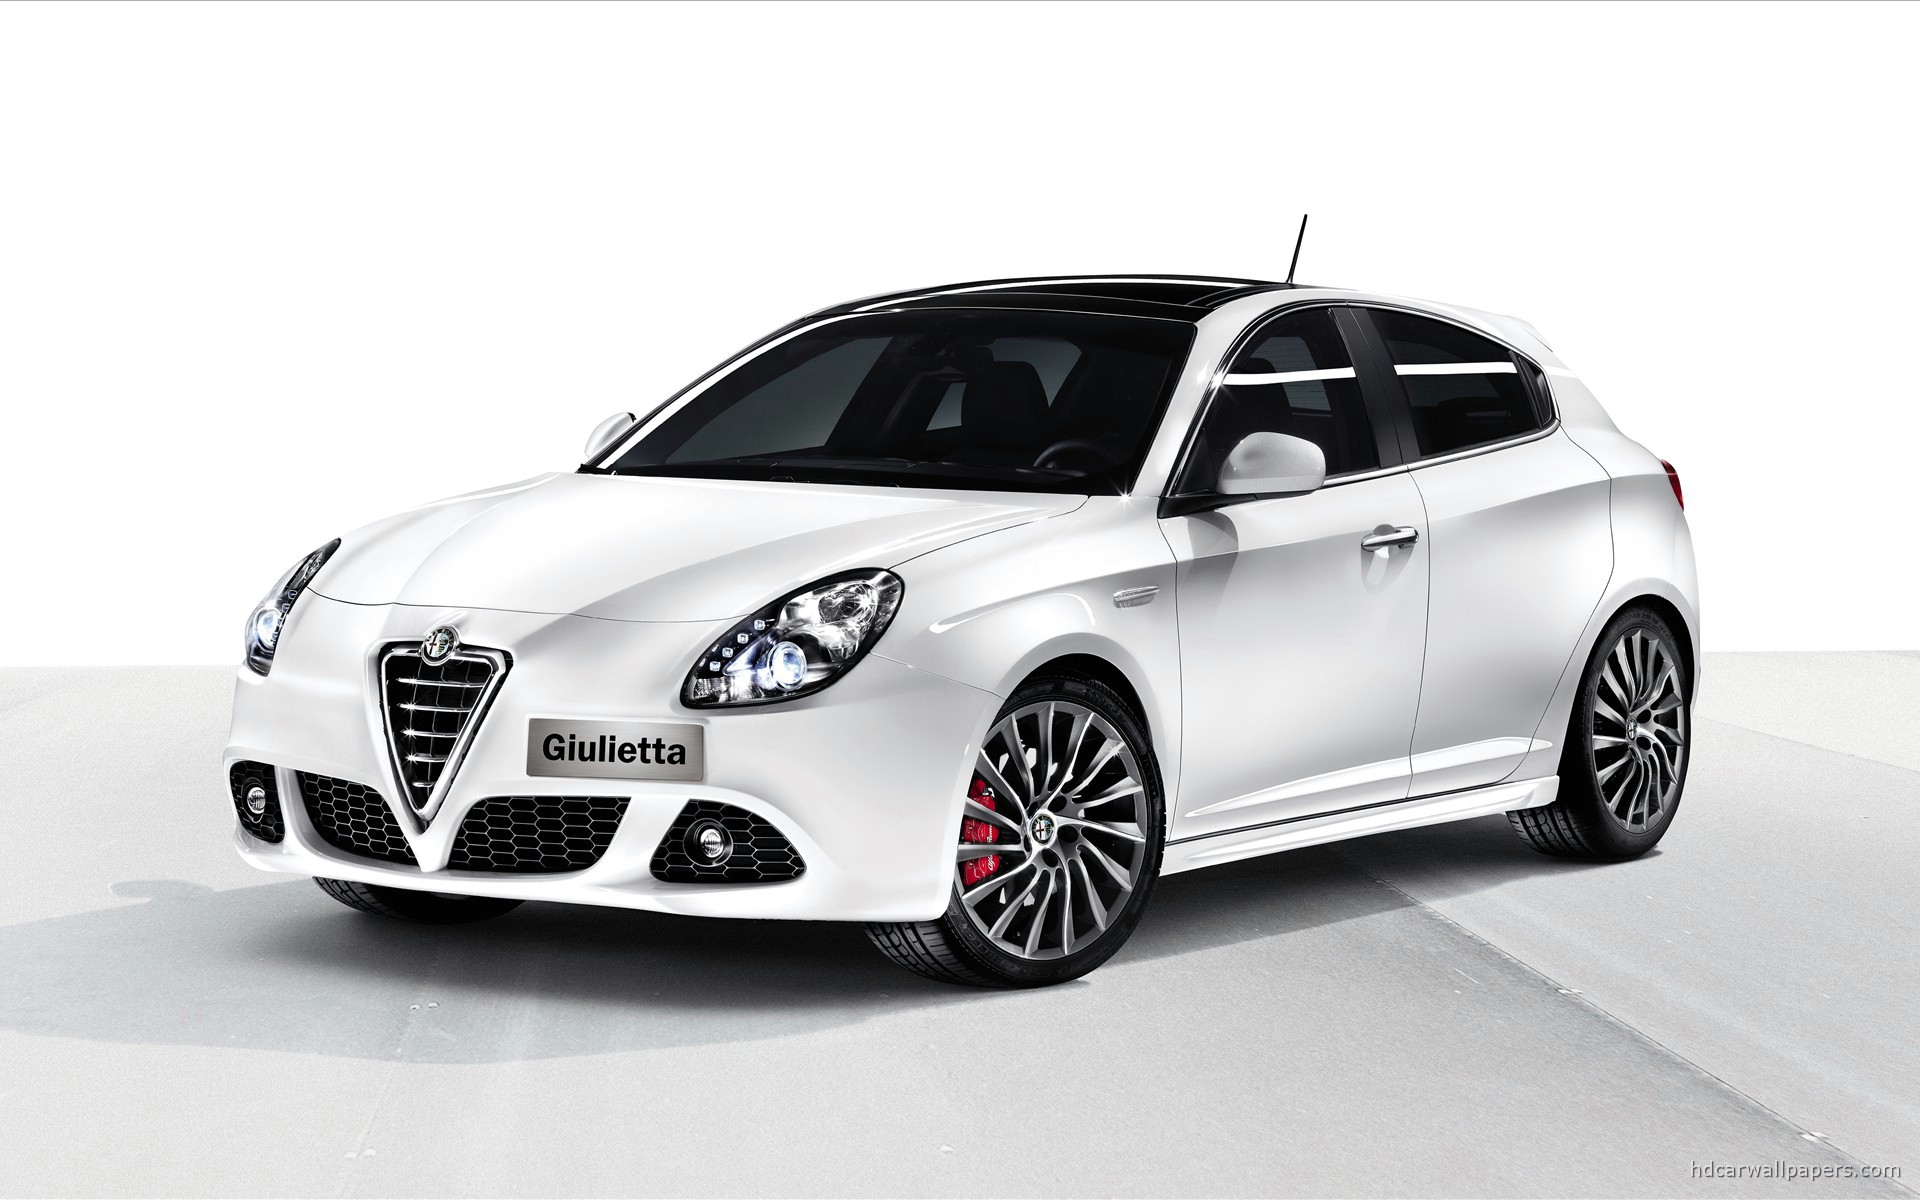 2011 alfa romeo giulietta wallpaper hd car wallpapers id 5. Black Bedroom Furniture Sets. Home Design Ideas